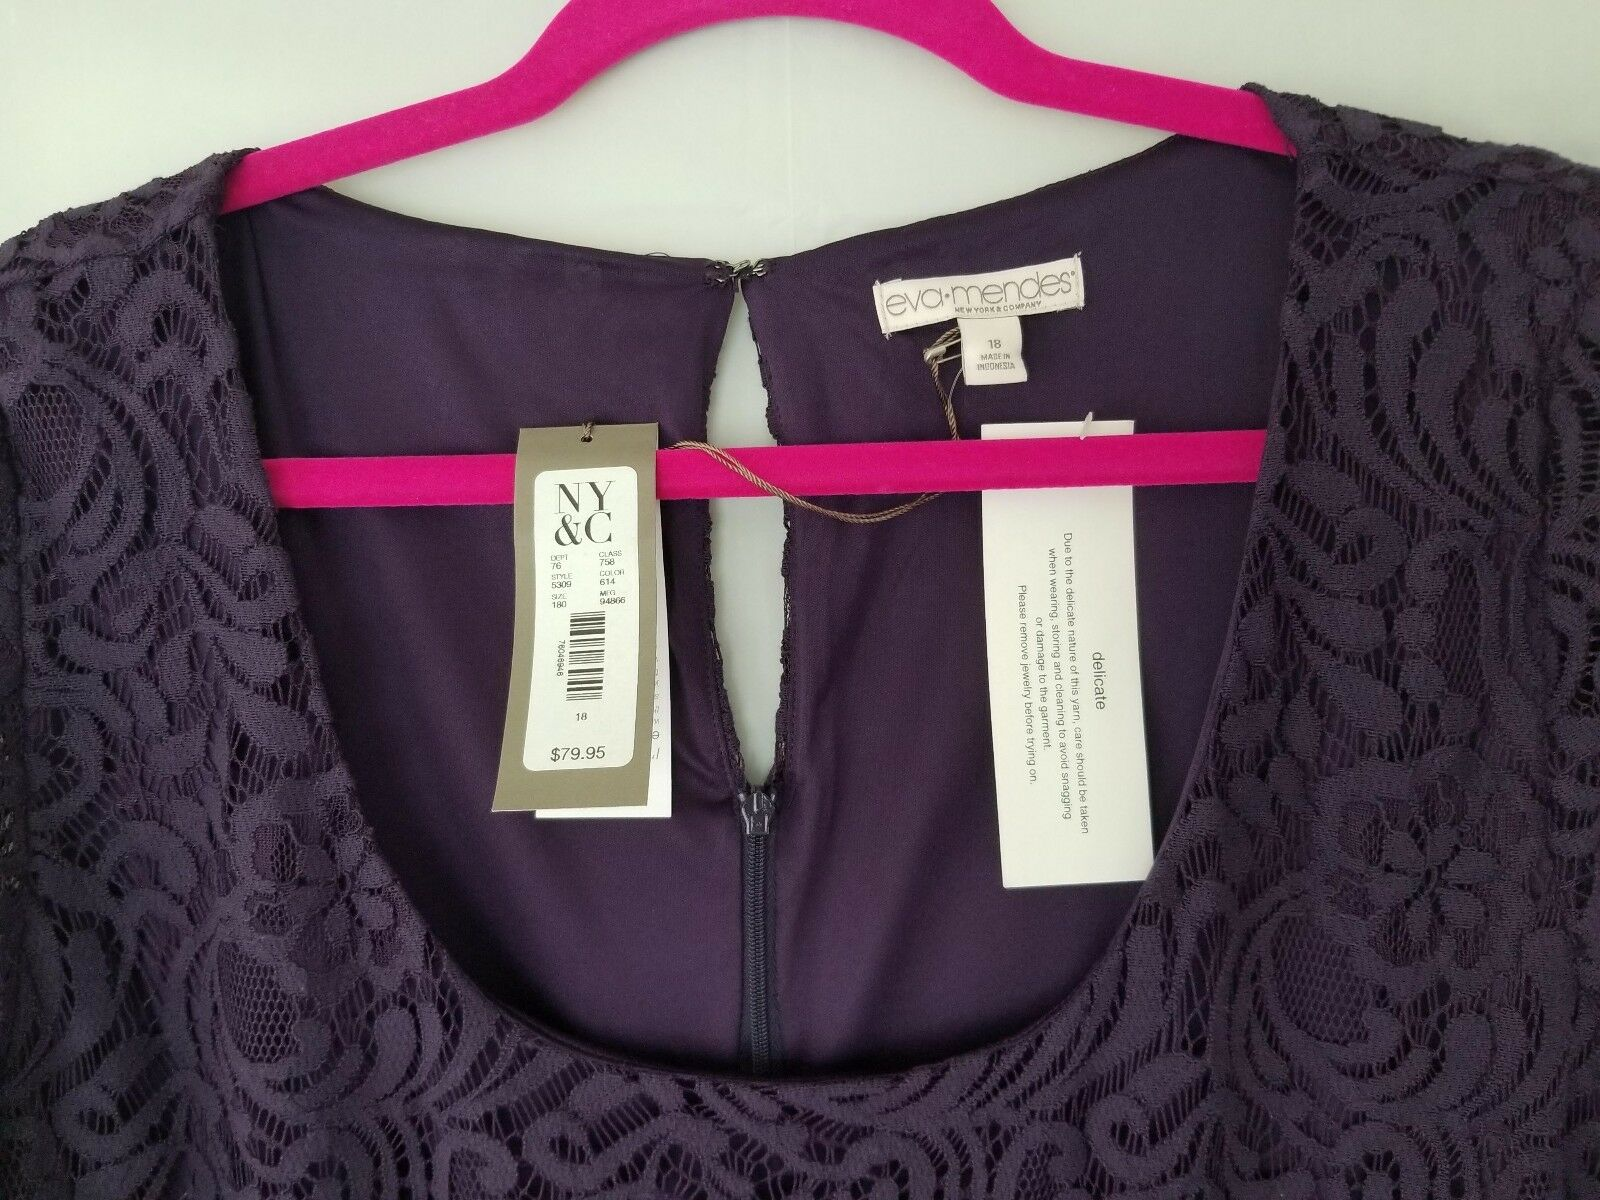 NEW NEW NEW YORK & COMPANY  PURPLE LACED DRESS EVA MENDES COLLECTION SIZE 18 (NWT) 77a6db